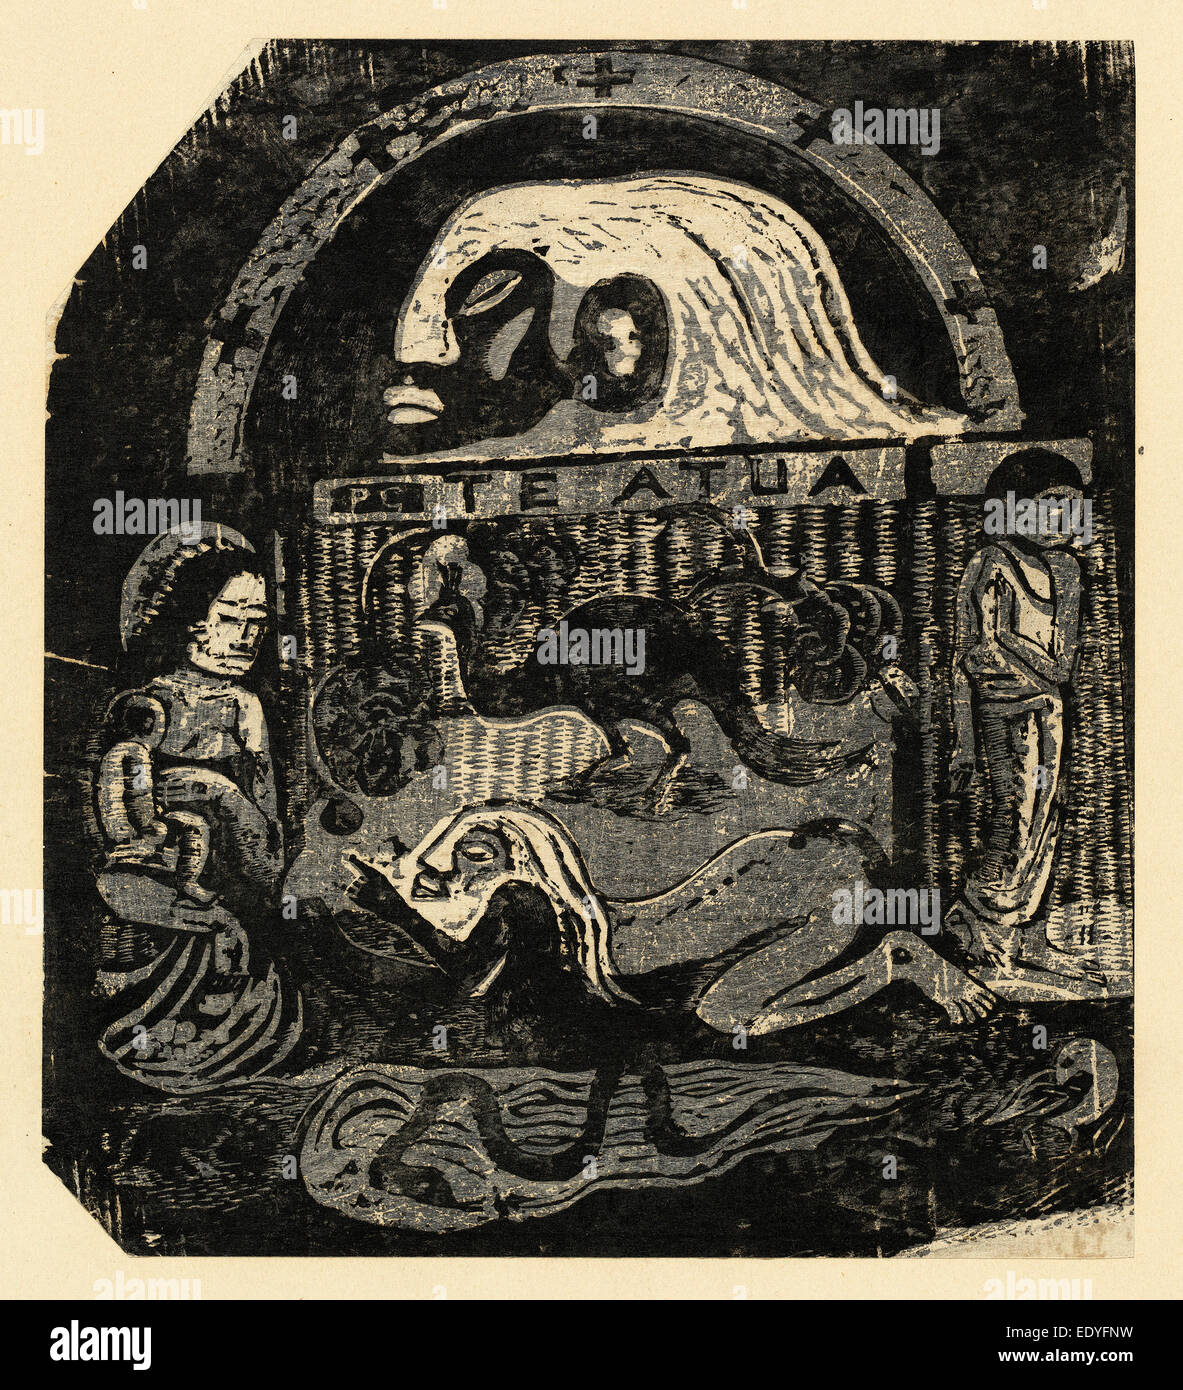 Paul Gauguin (French, 1848 - 1903), Te Atua (The Gods) Small Plate, in or after 1895, woodcut in black on thin japan - Stock Image